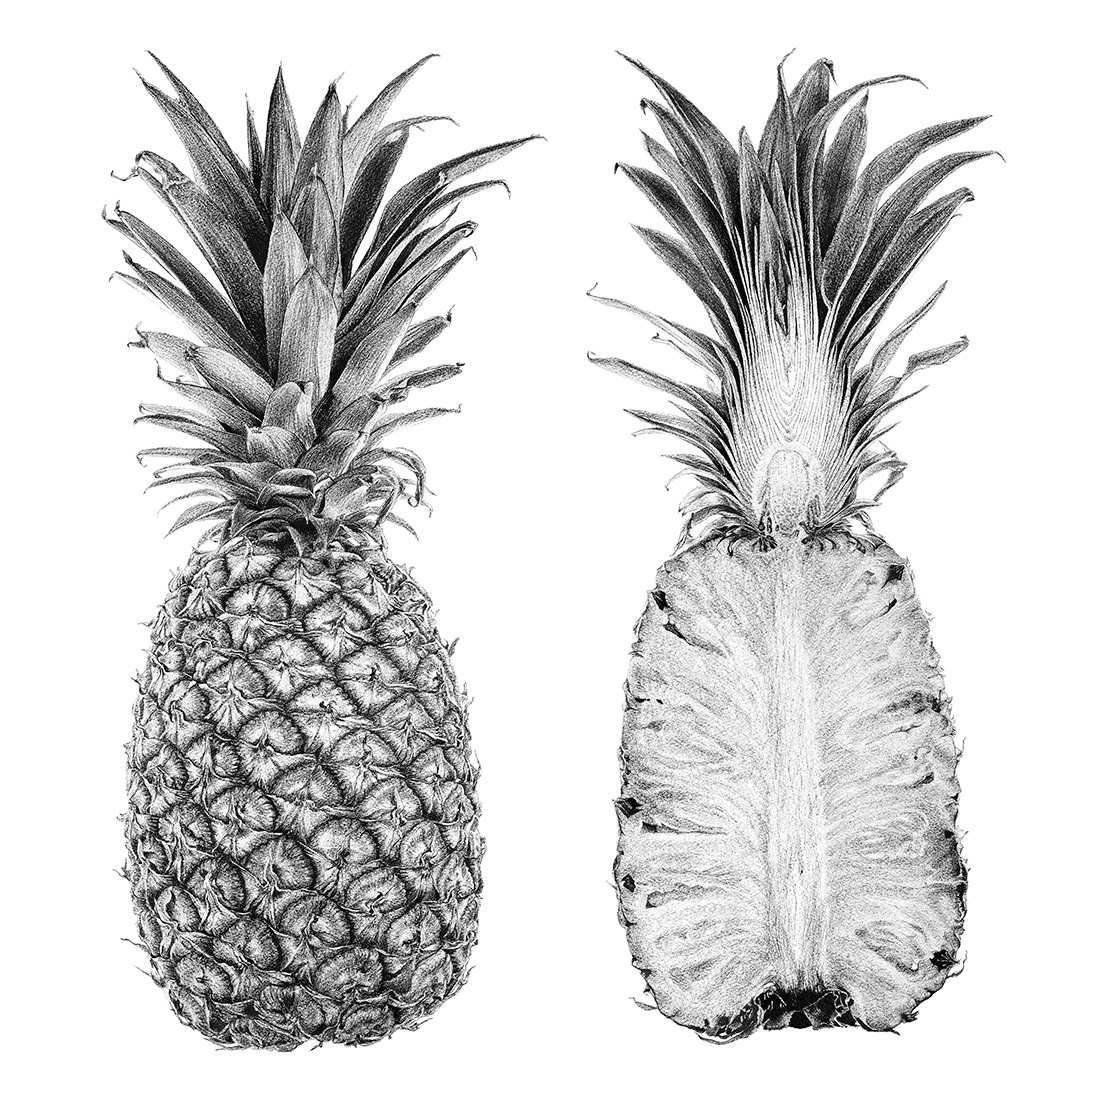 pineapple drawing pineapple ink drawing free transparent png 1200232 pineapple drawing